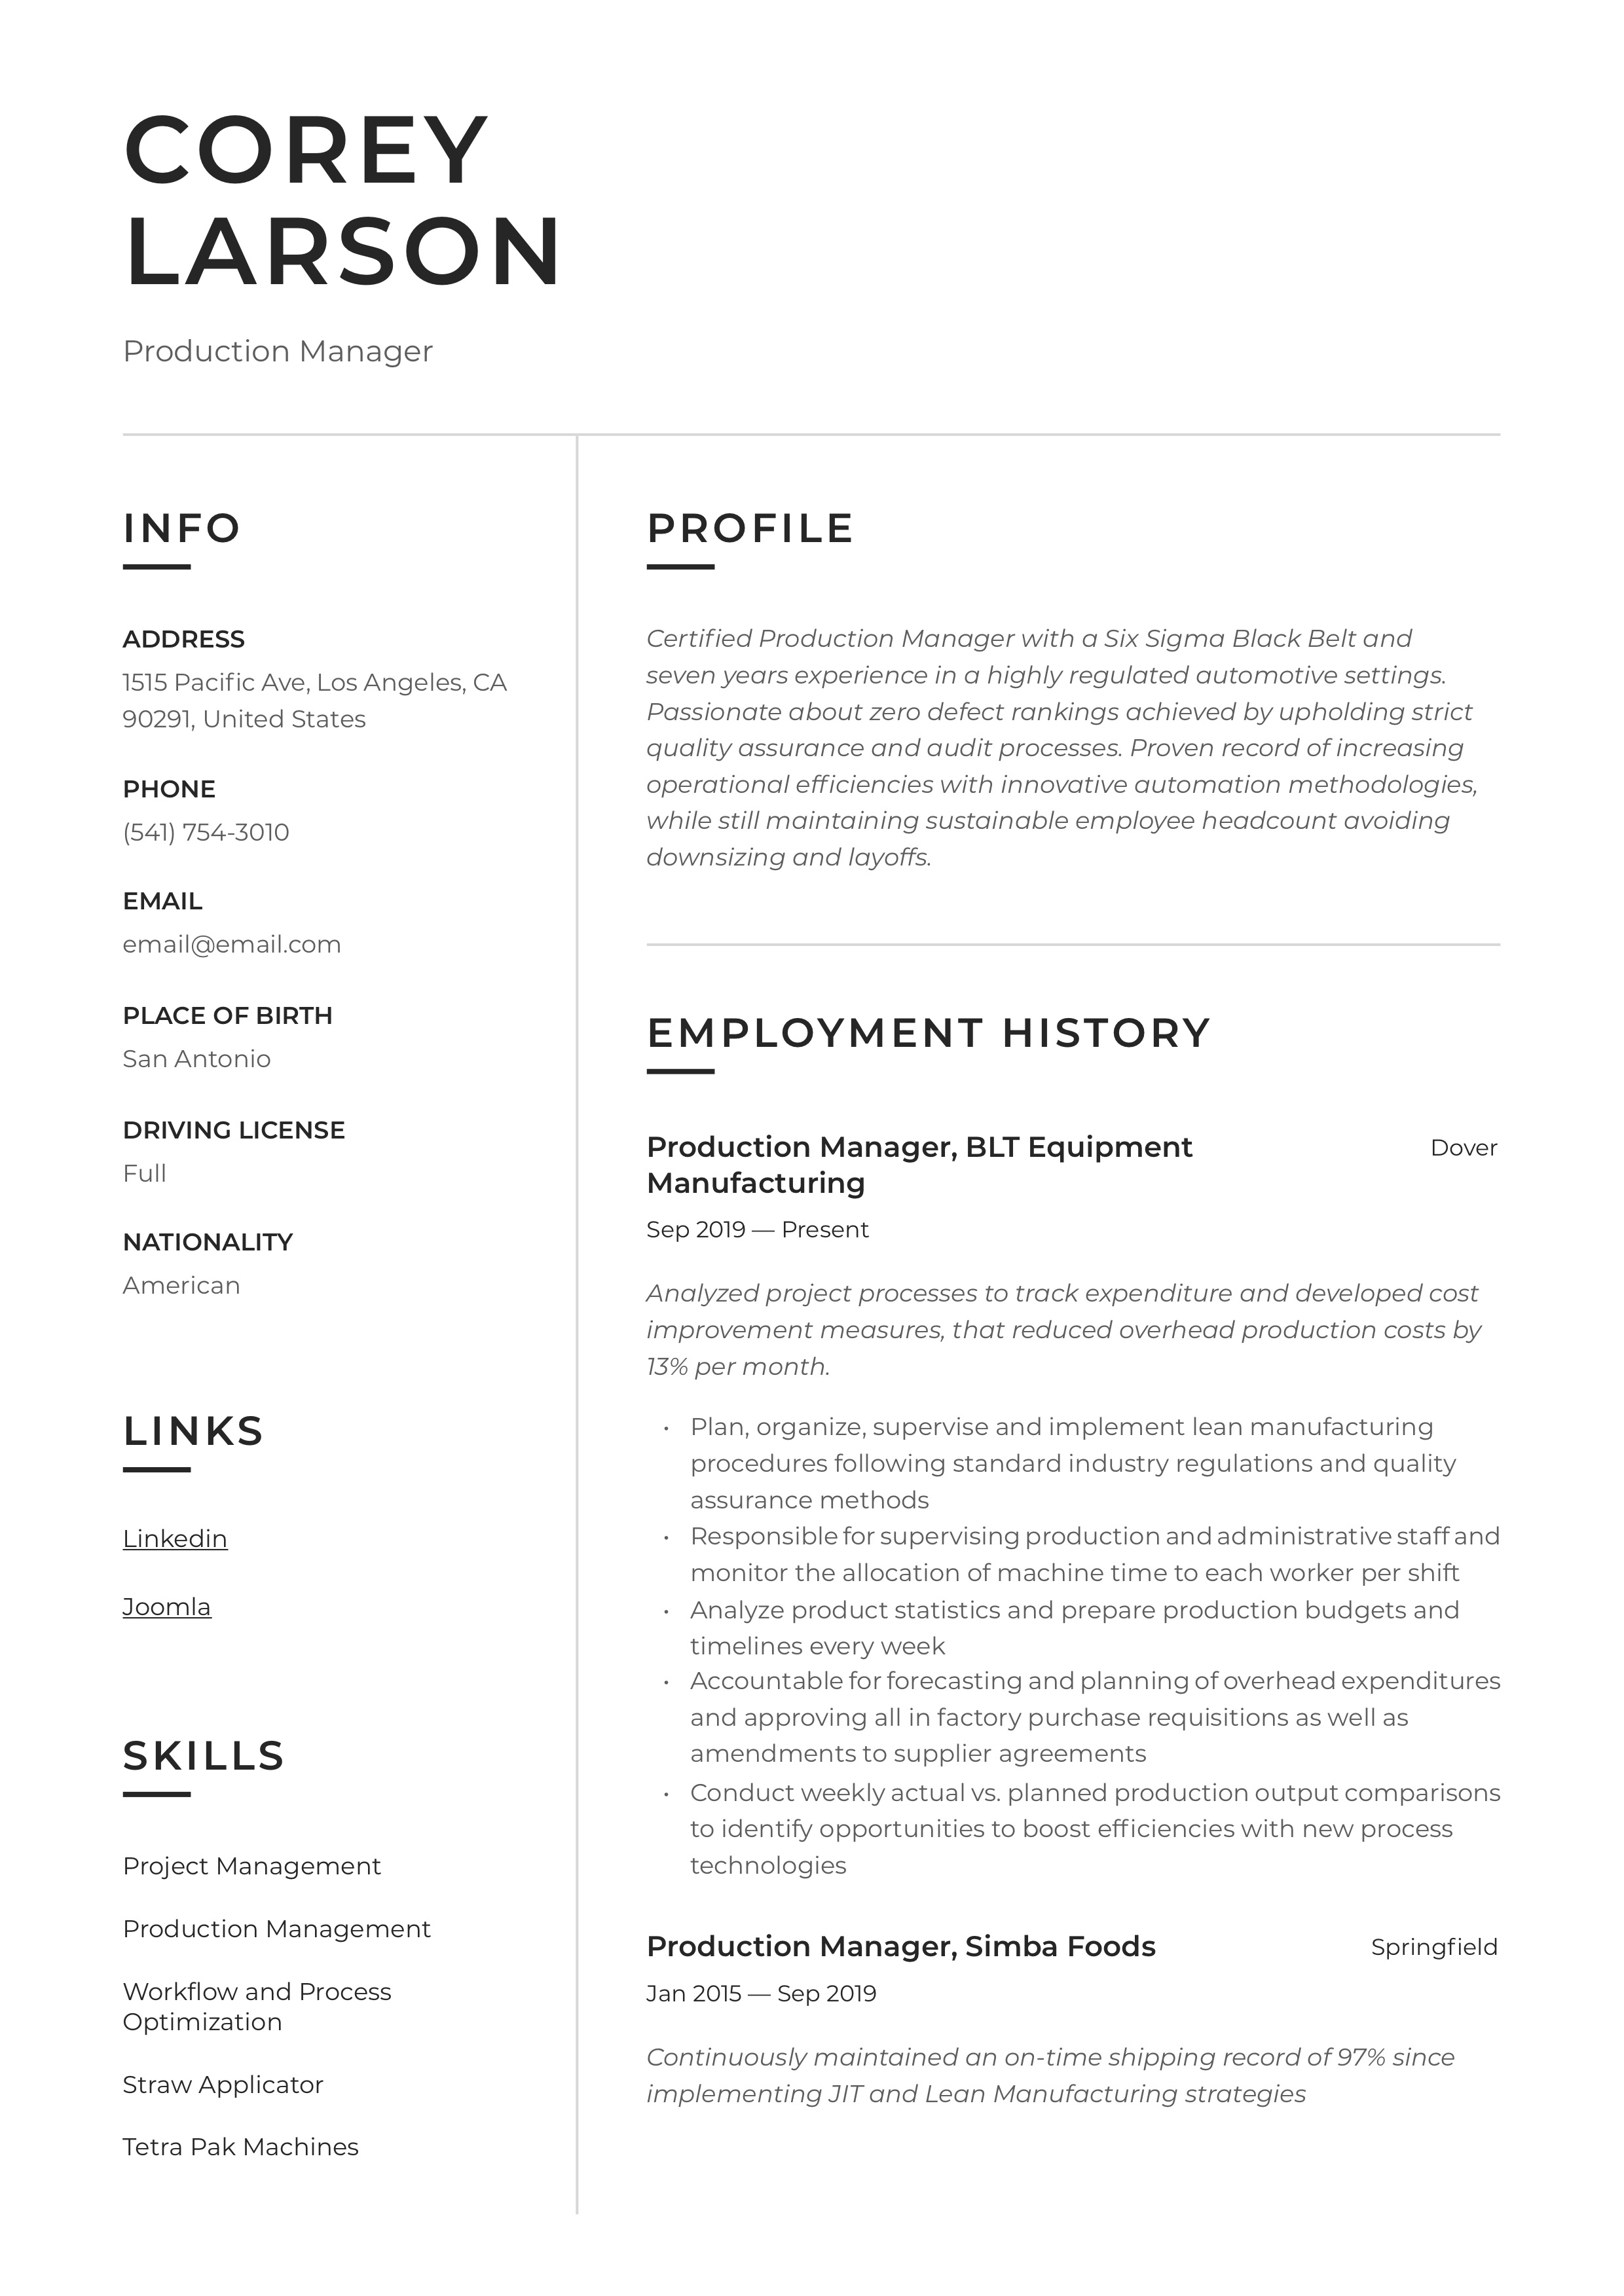 Production Manager Resume Writing Guide 12 Templates 2020